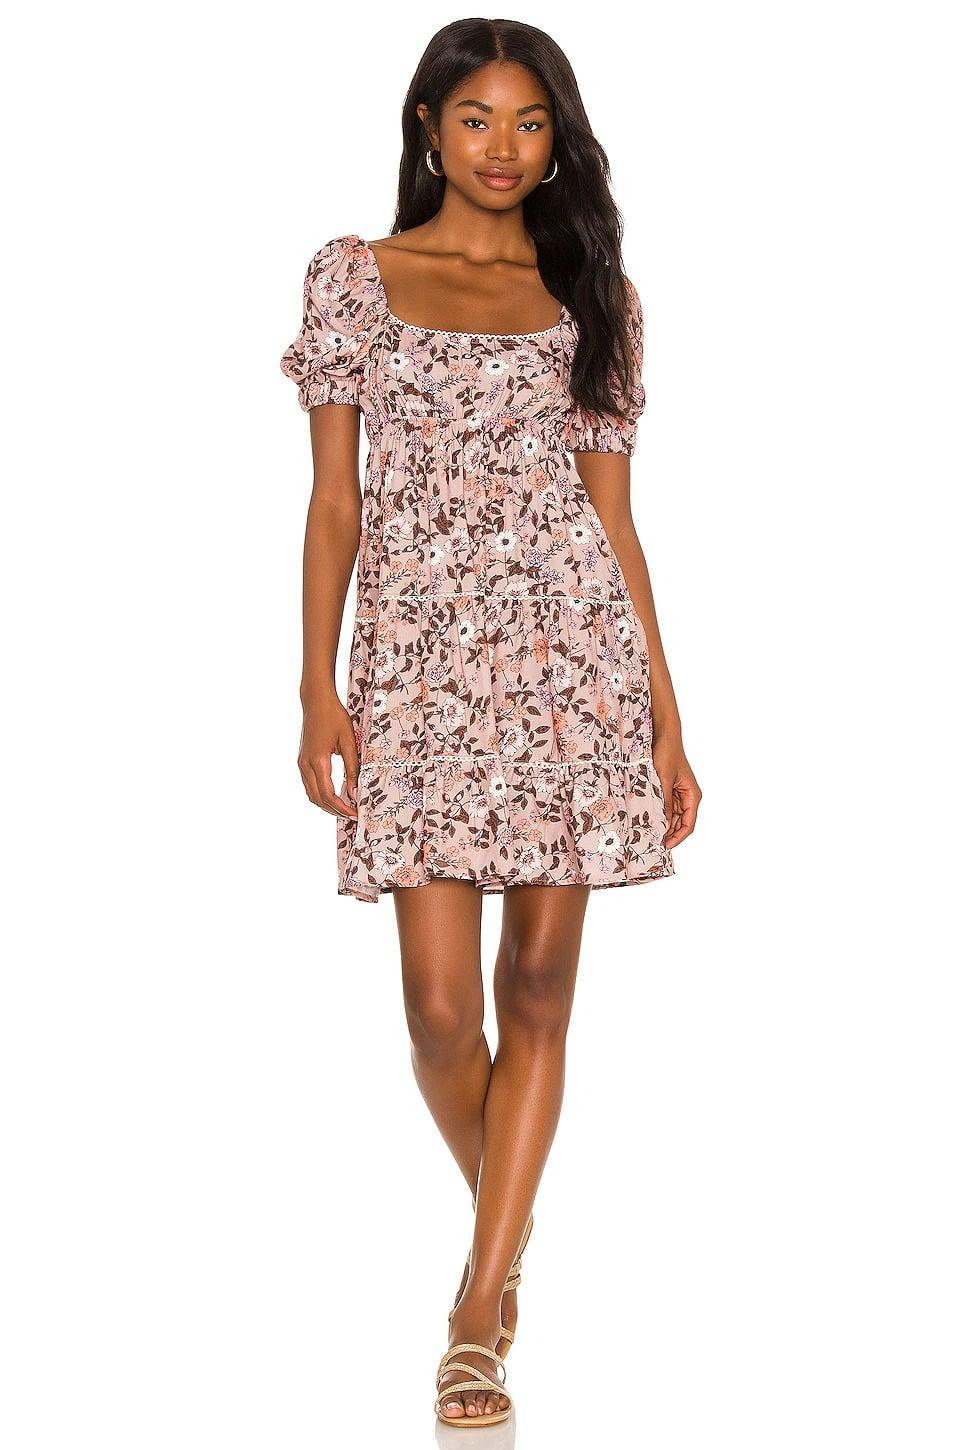 <p>From brunch to the pumkin patch, this <span>Maaji Ditsy Leah Short Dress in Floral </span> ($98) is such a cute find you can wear all year long. Just change up the shoes and add a layer or two to fit the weather. </p>